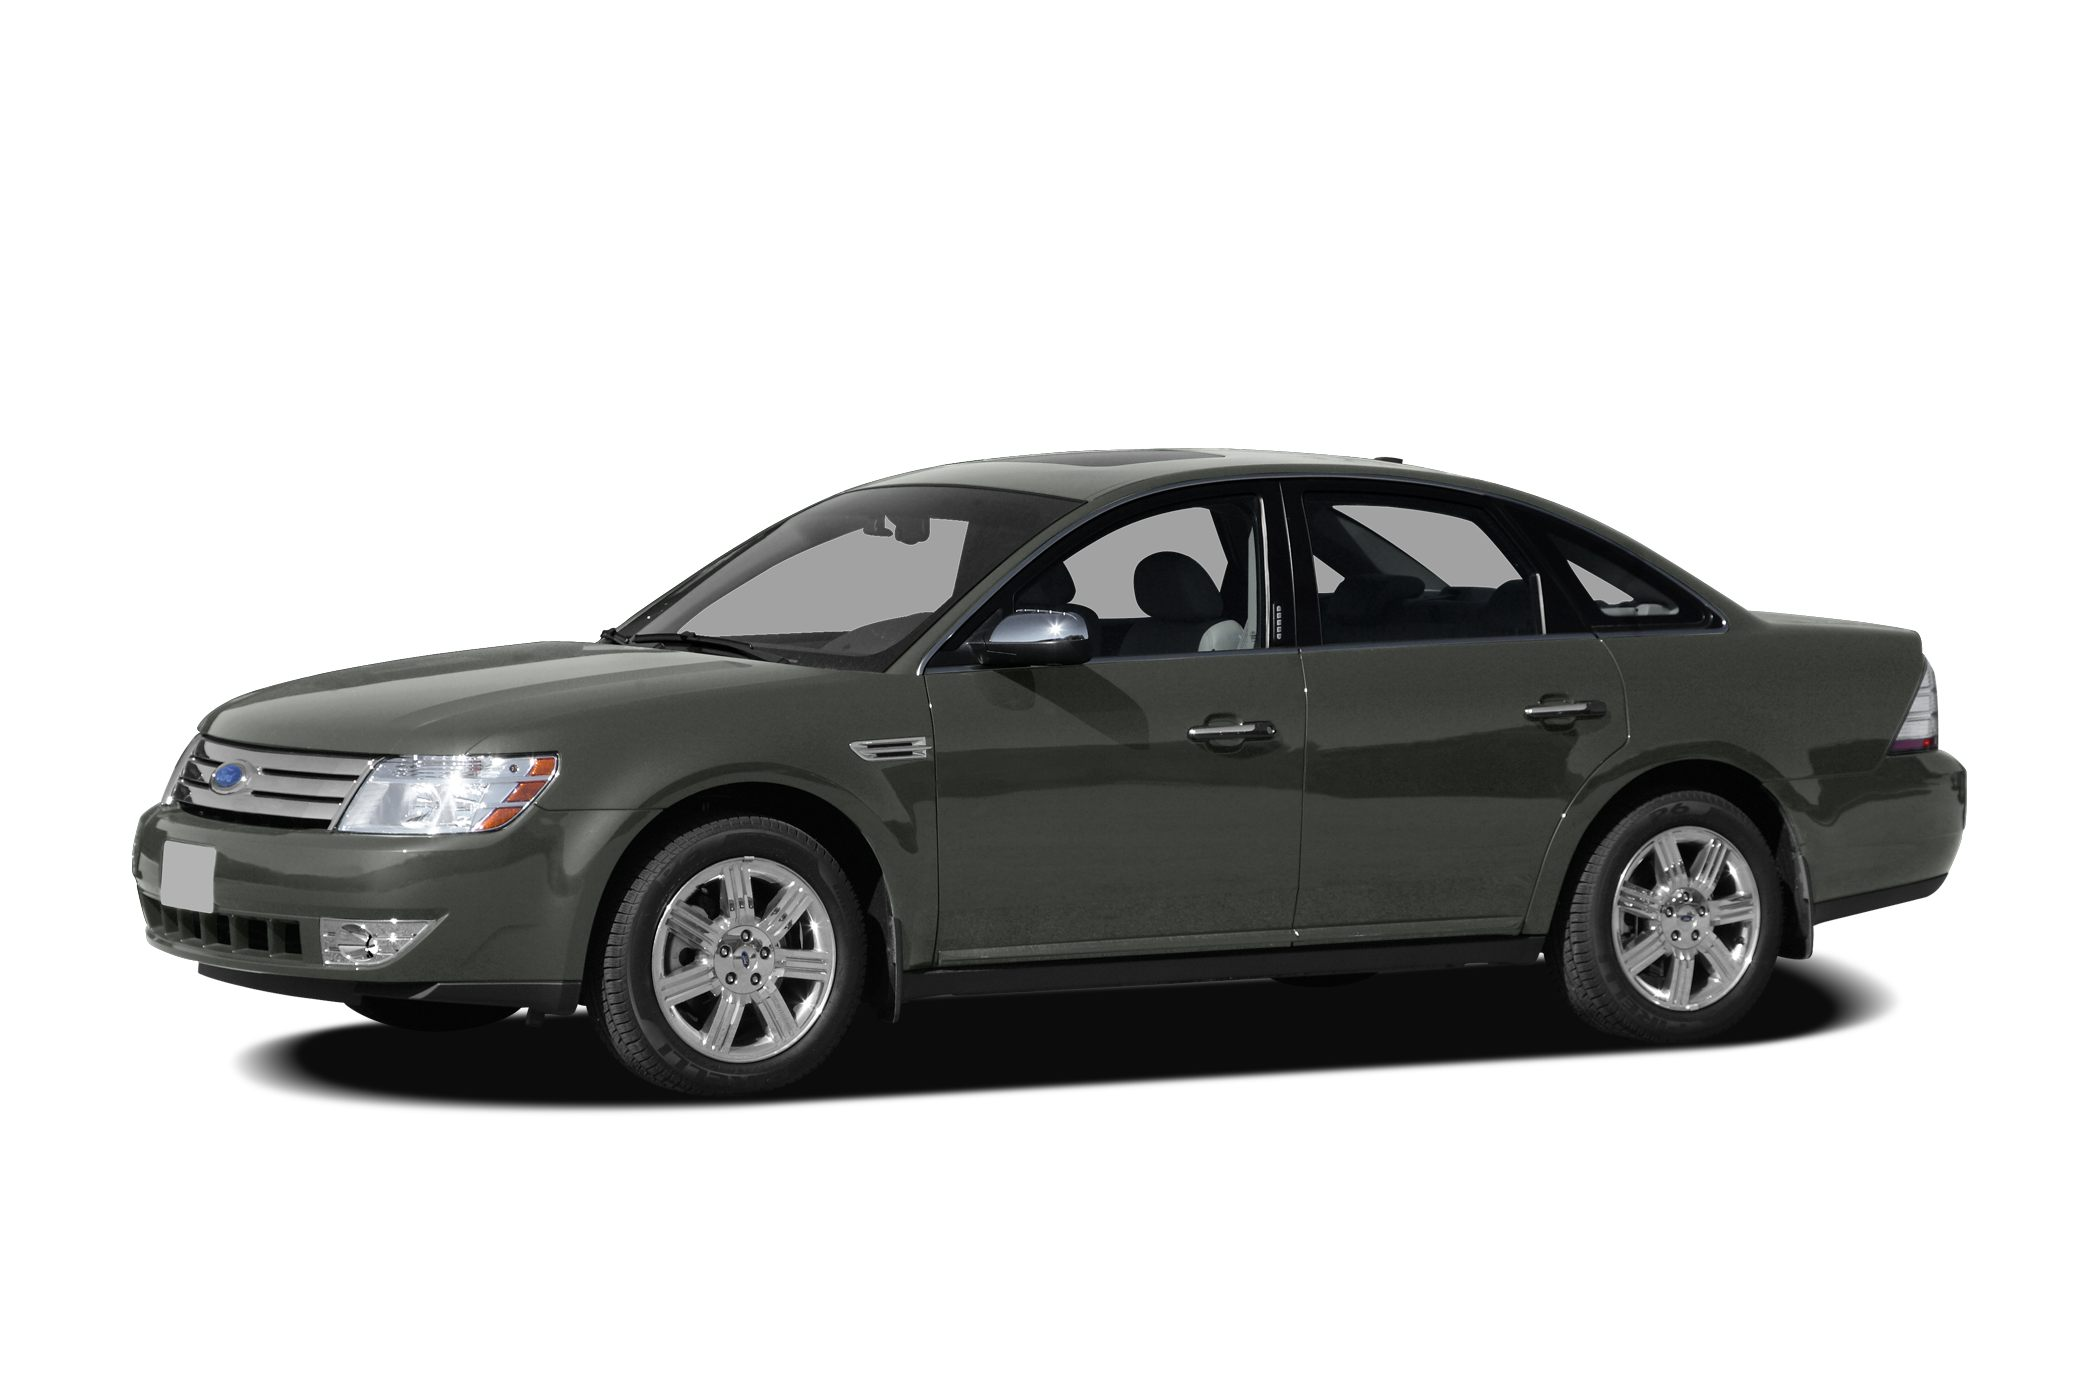 2008 Ford Taurus SEL Sedan for sale in Dillsburg for $8,987 with 99,312 miles